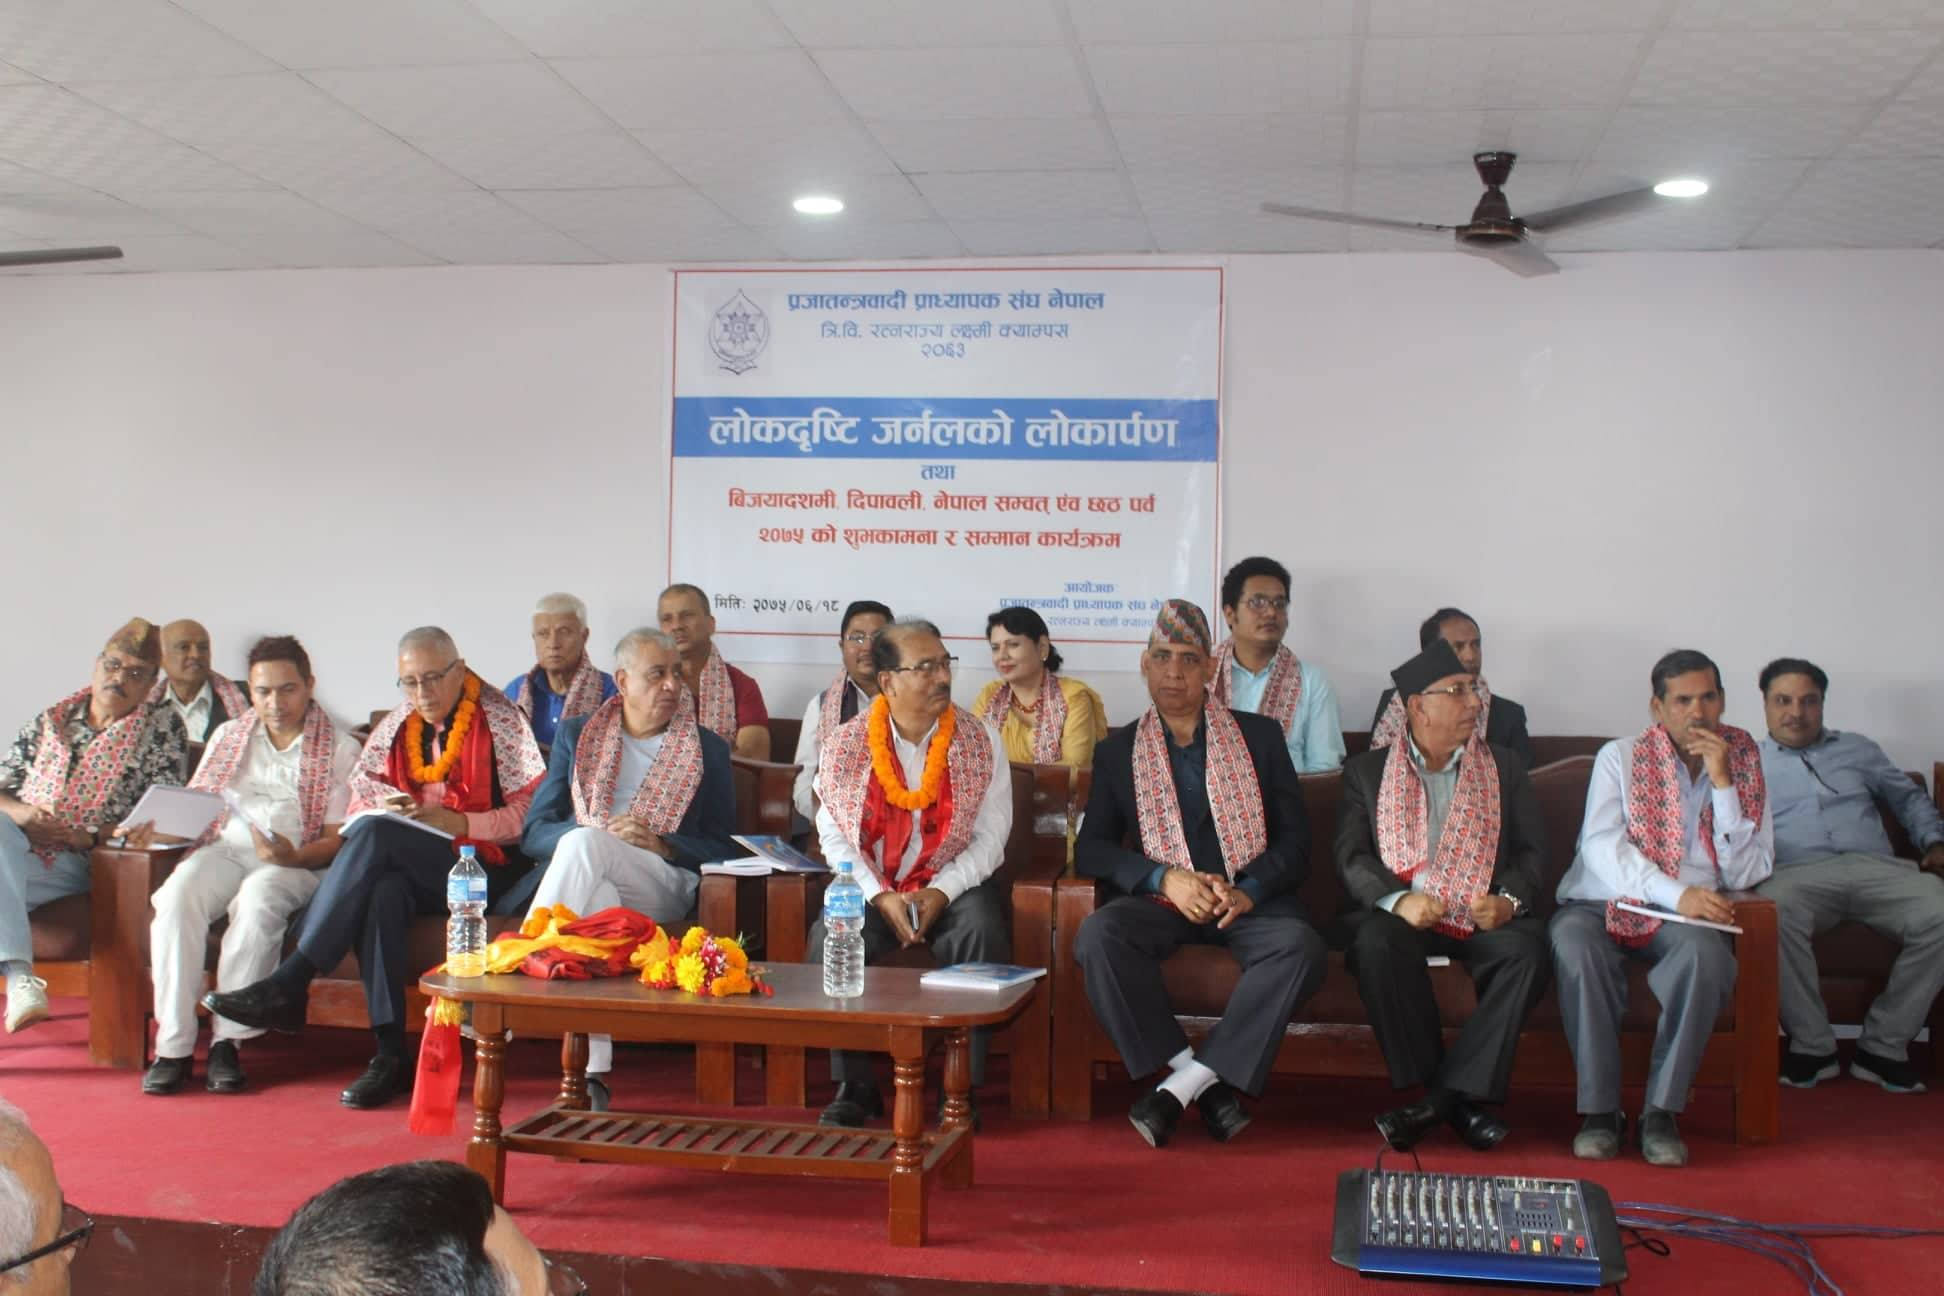 Nepal should be re-declared as Hindu state: Dr Shashank Koirala